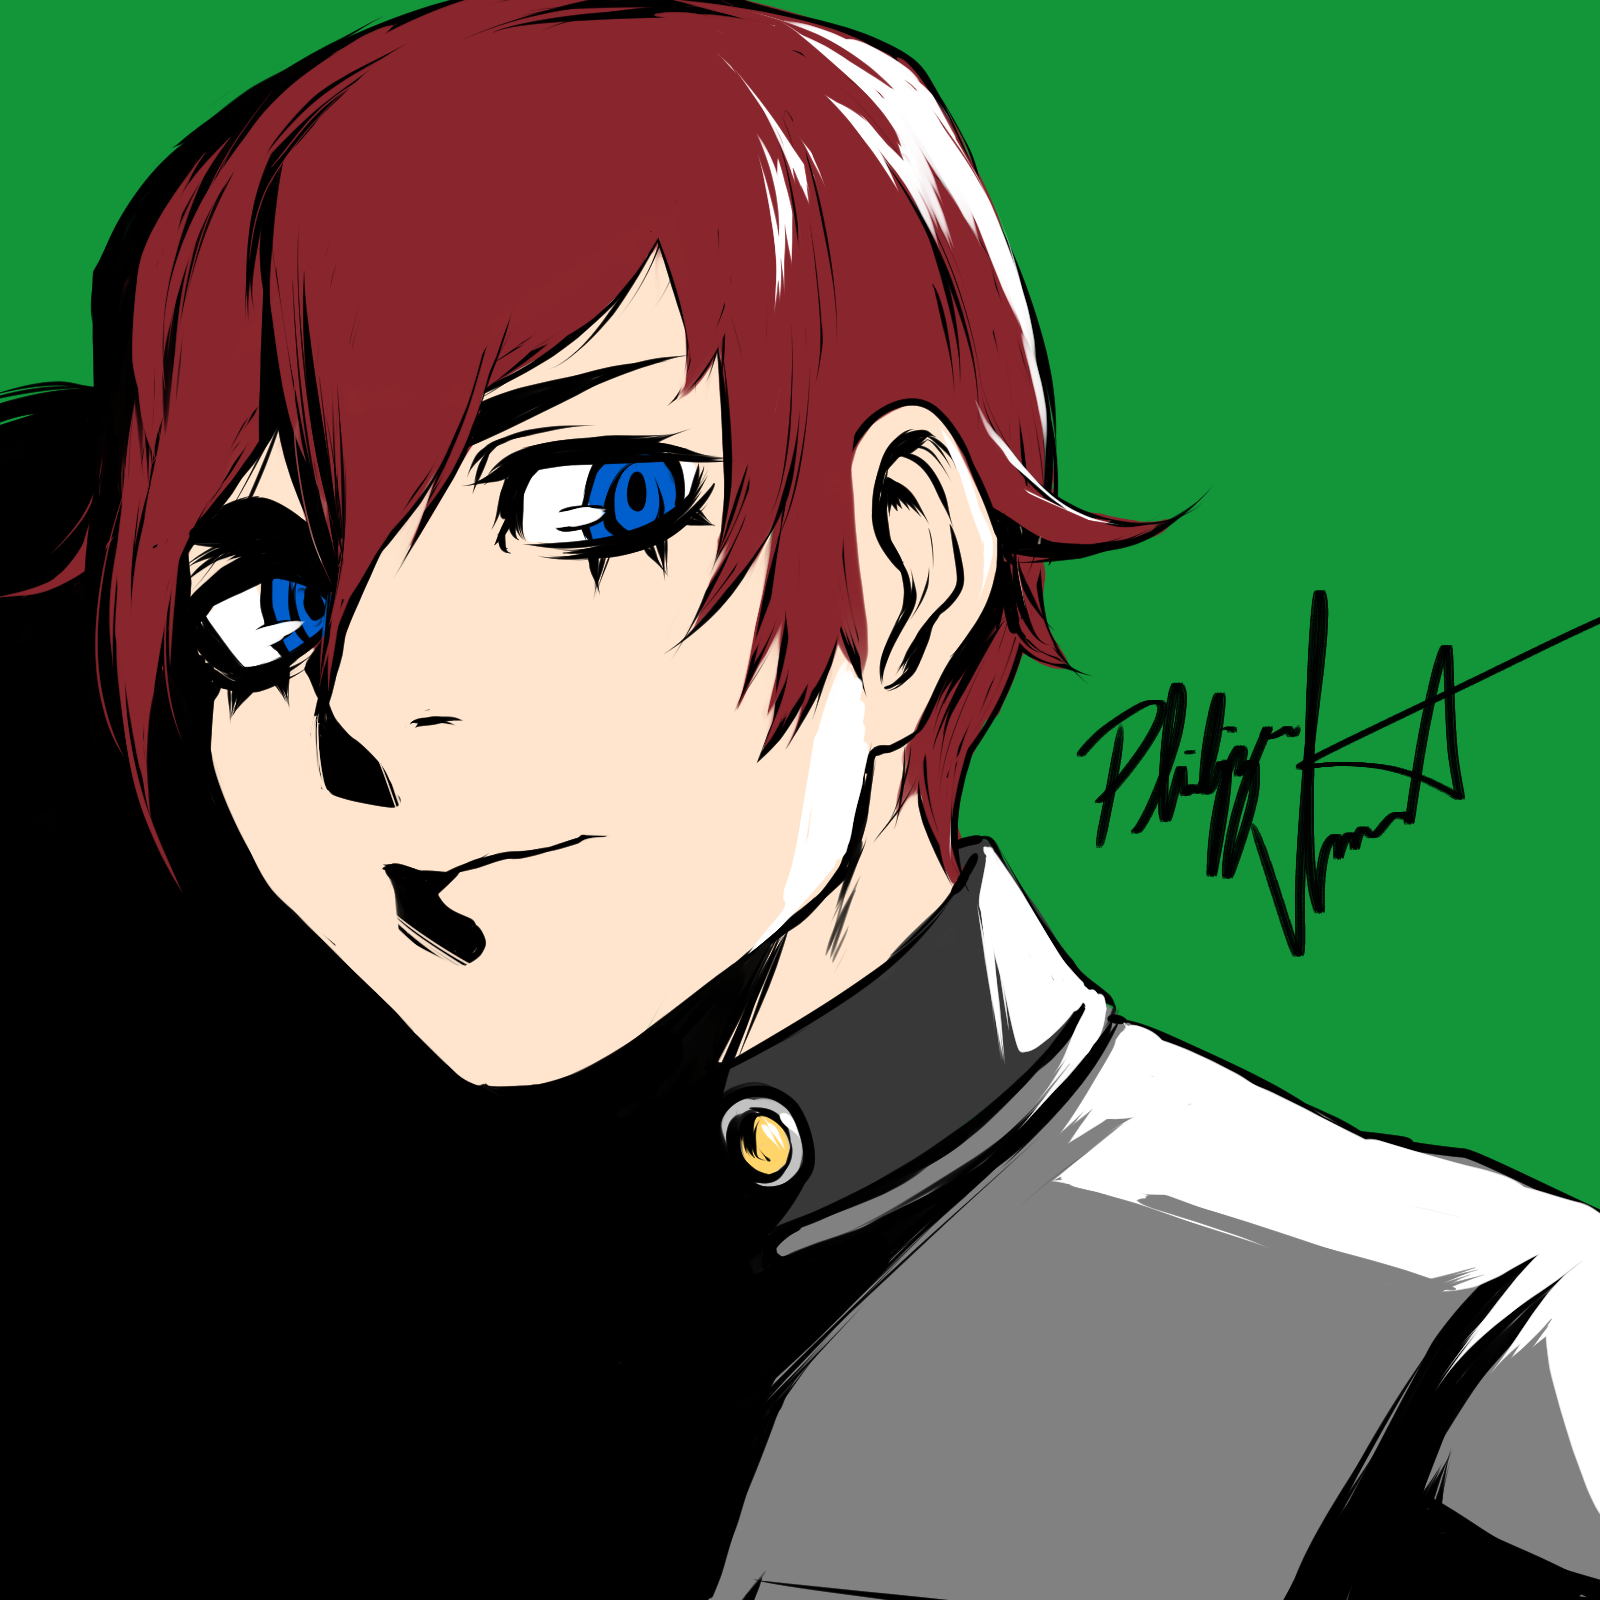 I drew the protagonist from Revelations Persona so ur welcome lol